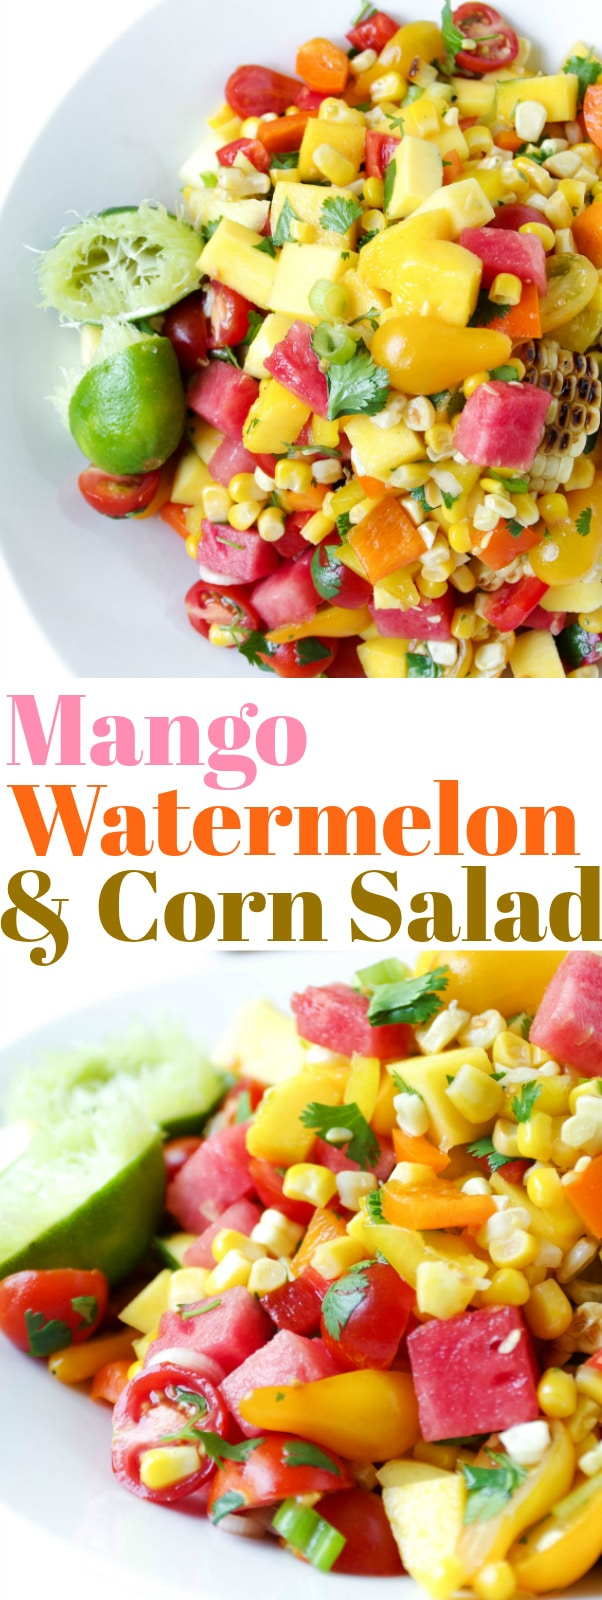 Mango, Watermelon, and Corn Salad via @theforkedspoon #salad #watermelon #summer #potluckrecipe #easyrecipe #mango #corn #healthyrecipe For this recipe and more visit, https://theforkedspoon.com/